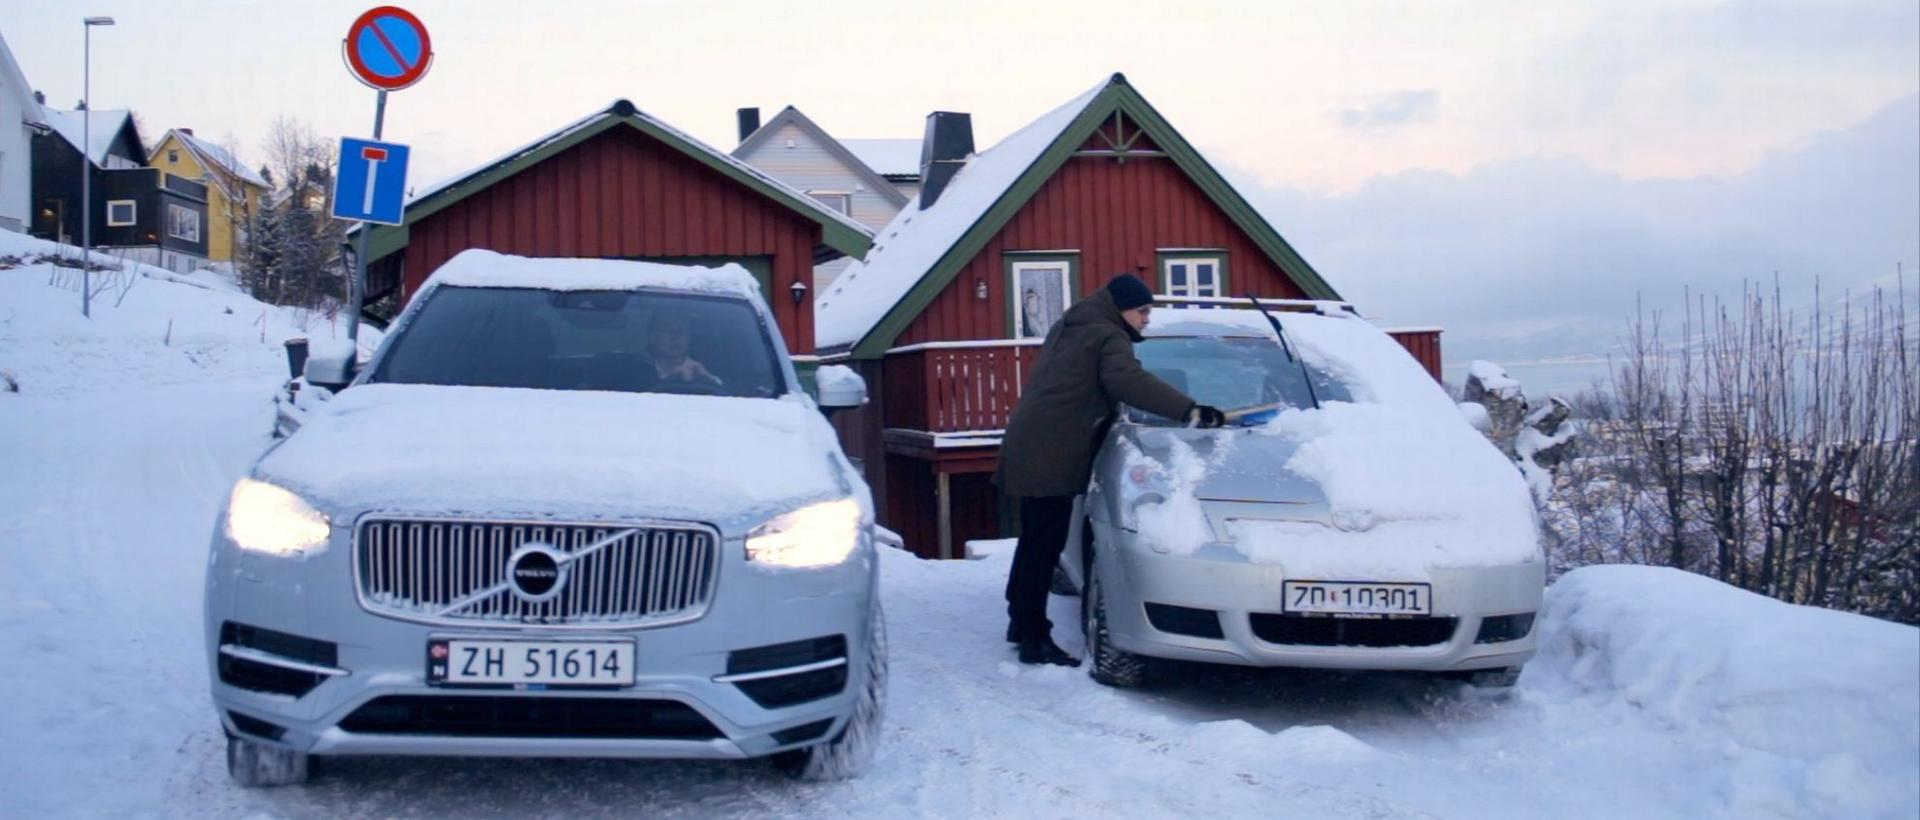 skrape bilrute is snø isskrape parkeringsvarmer Volvo on Call